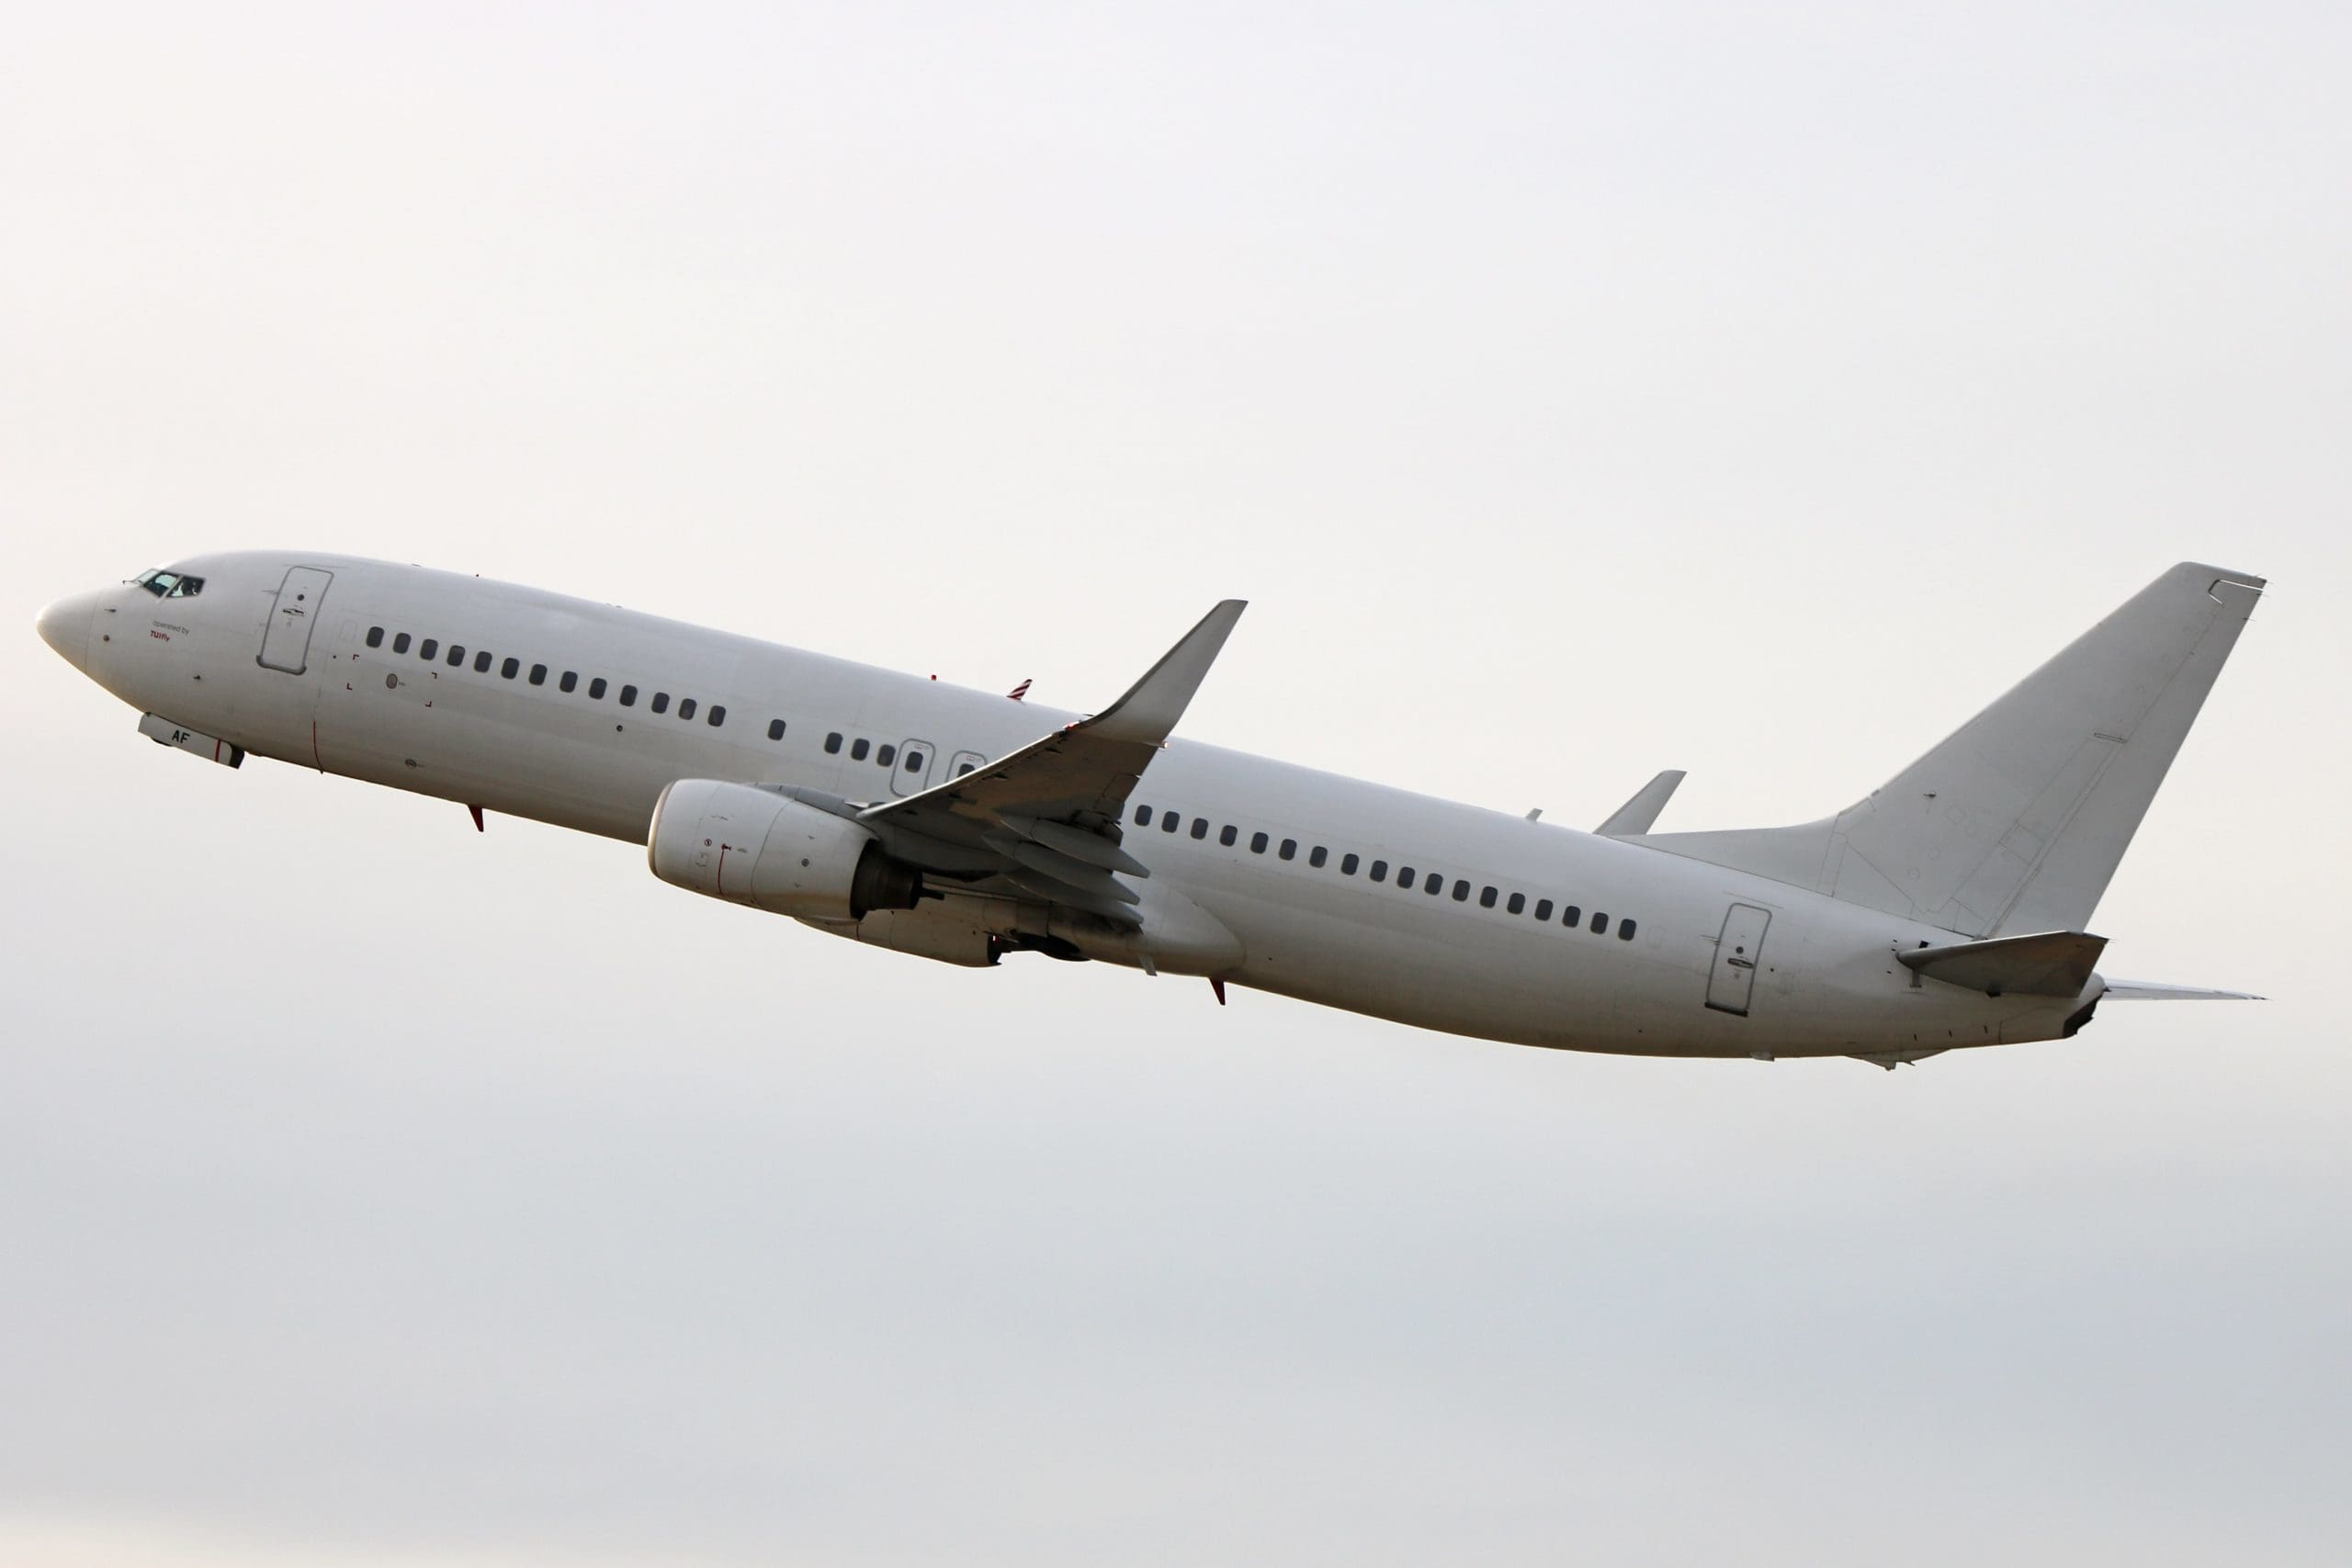 Boeing 737-800 for sale